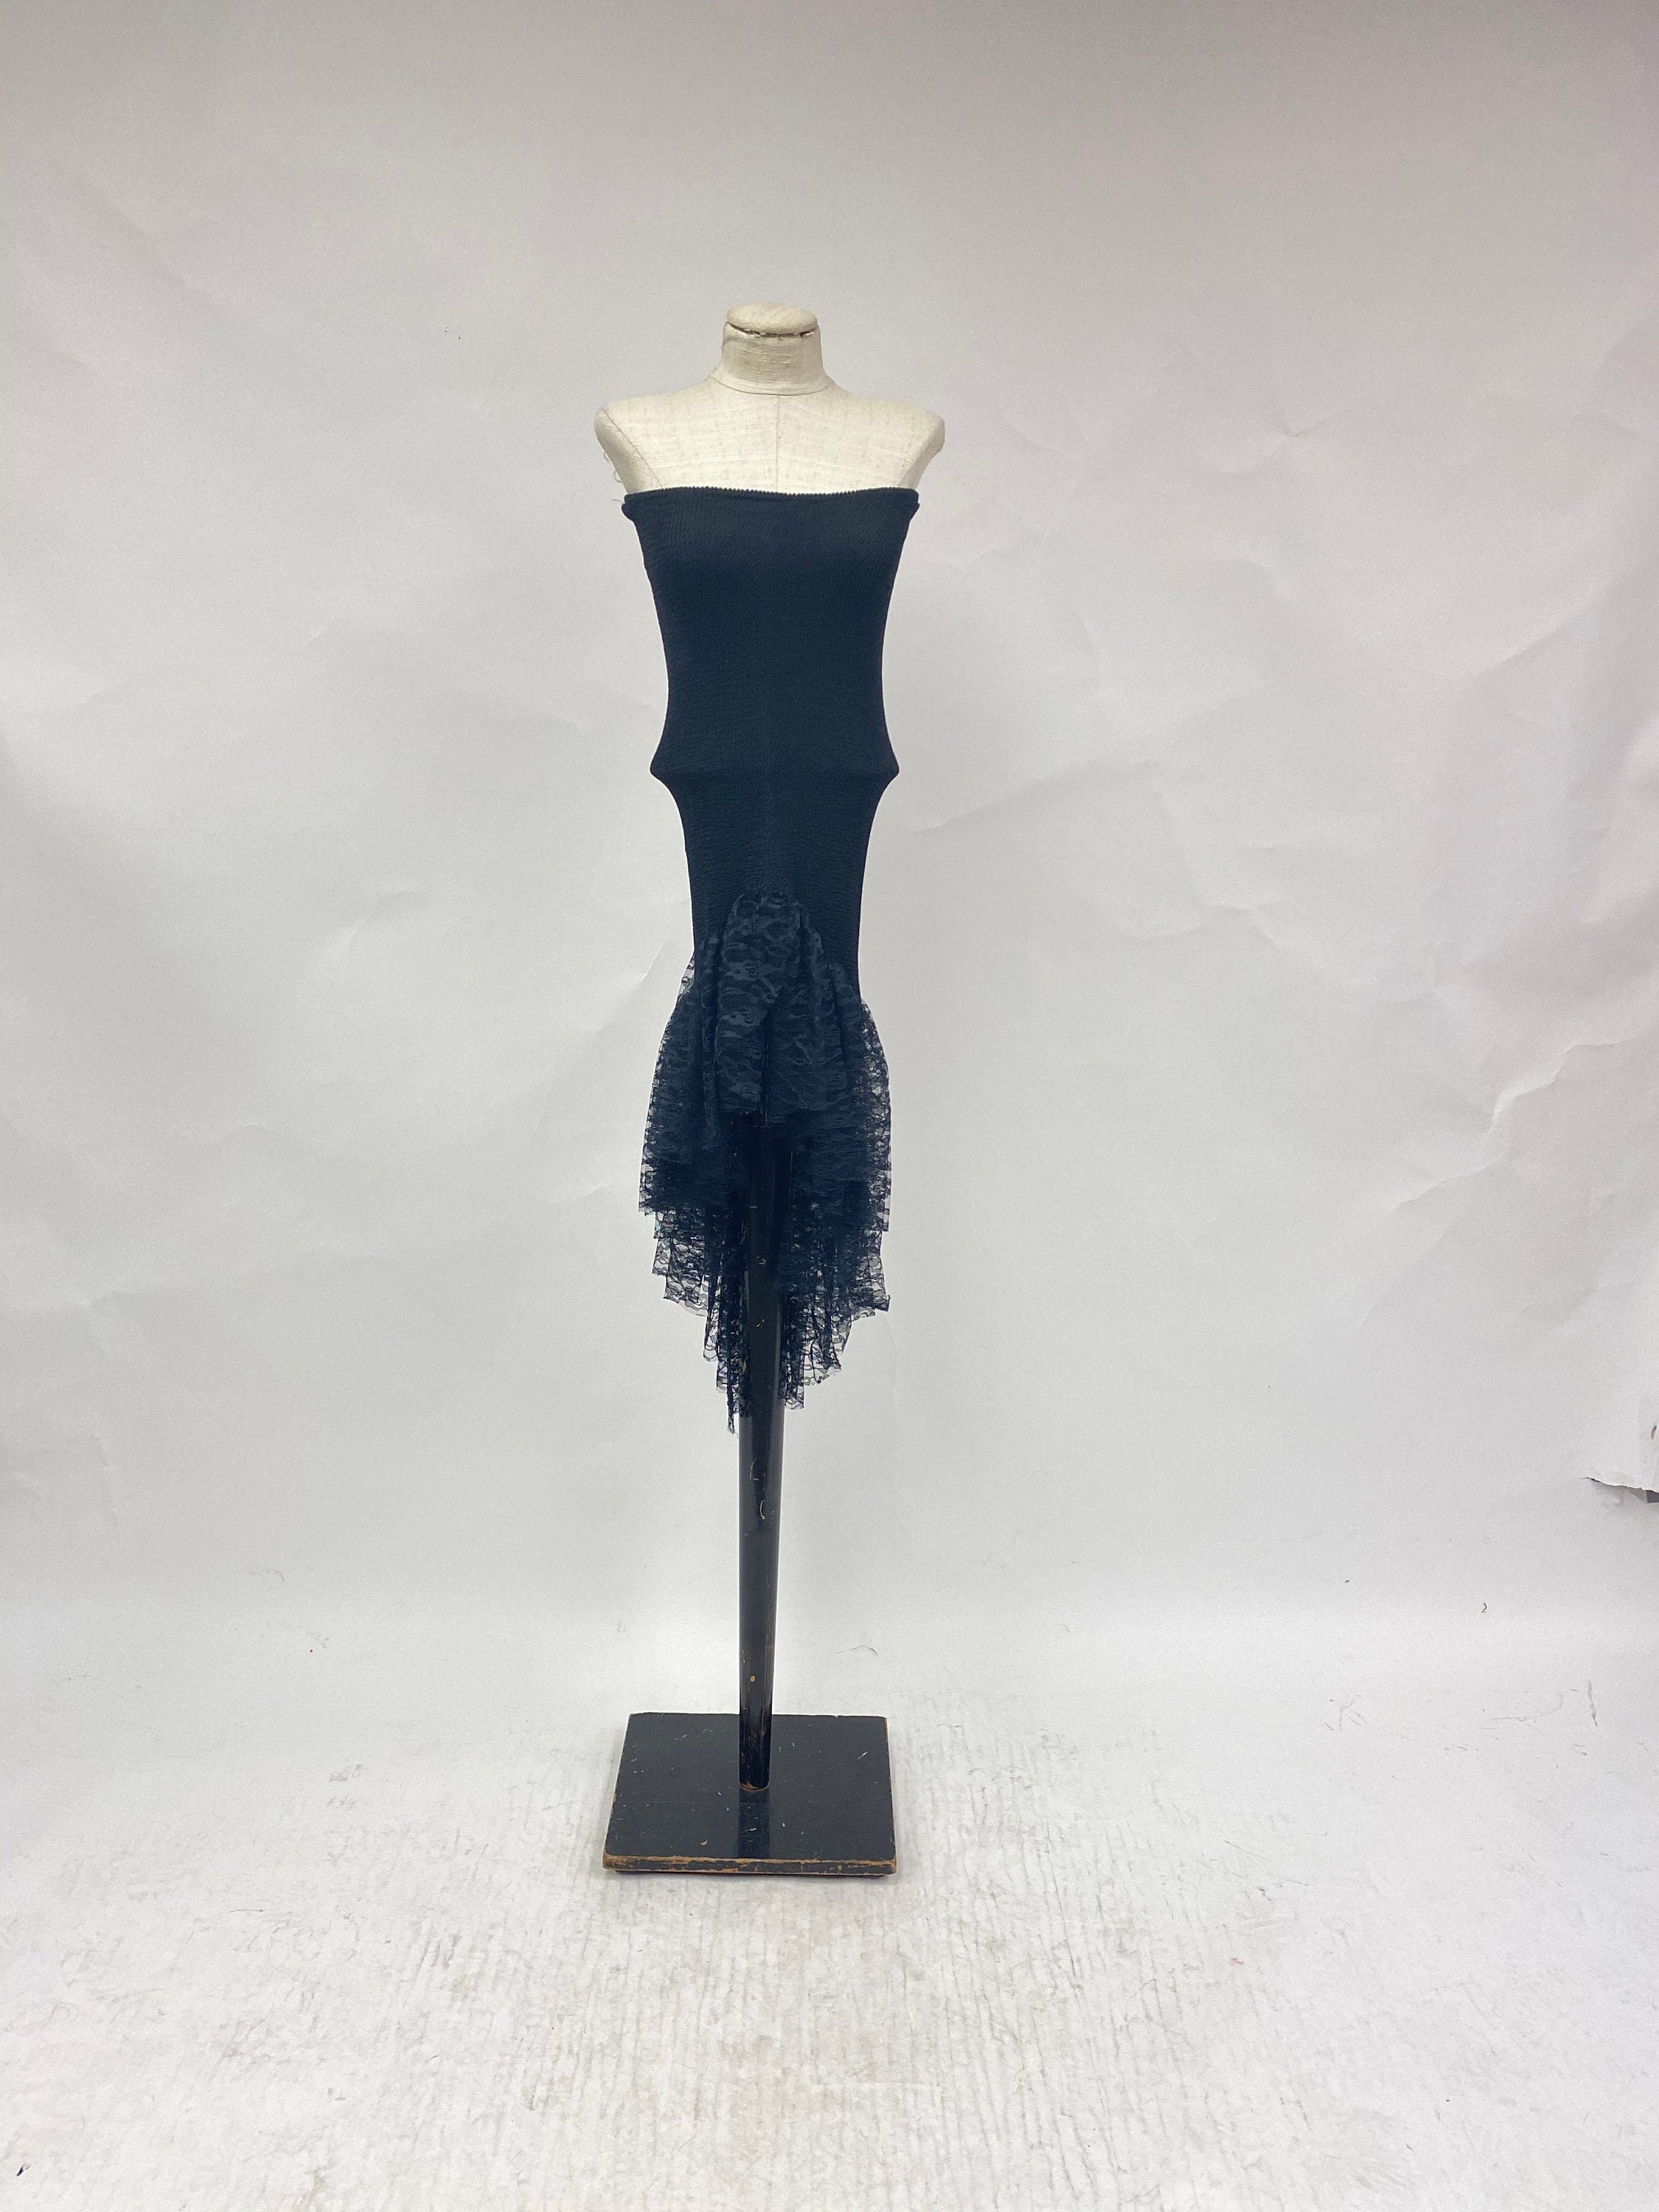 80s Dresses   Casual to Party Dresses Vintage 1980s Strapless Dress With Tiered Lace Hem $0.00 AT vintagedancer.com